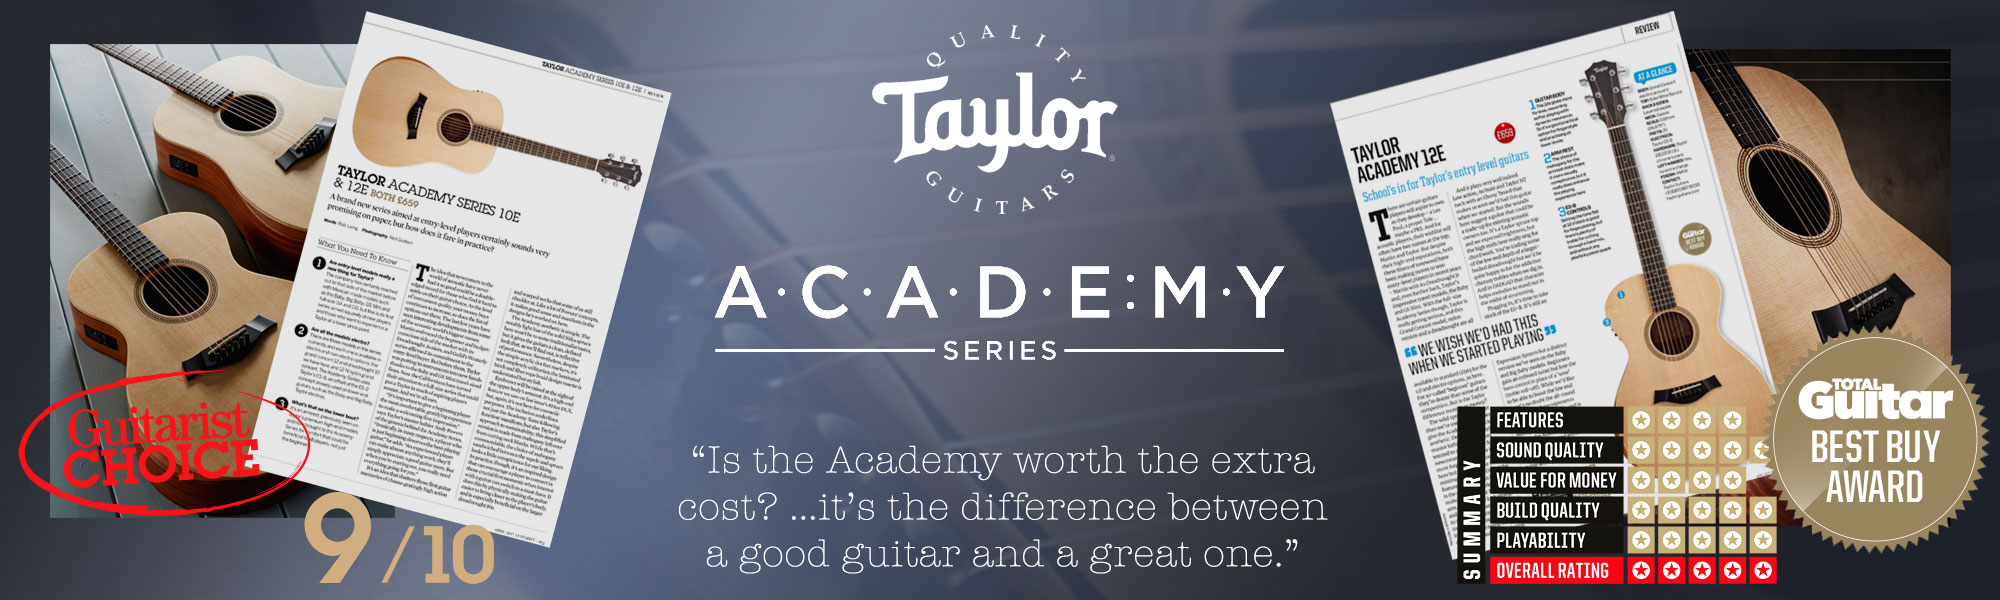 Taylor academy banner